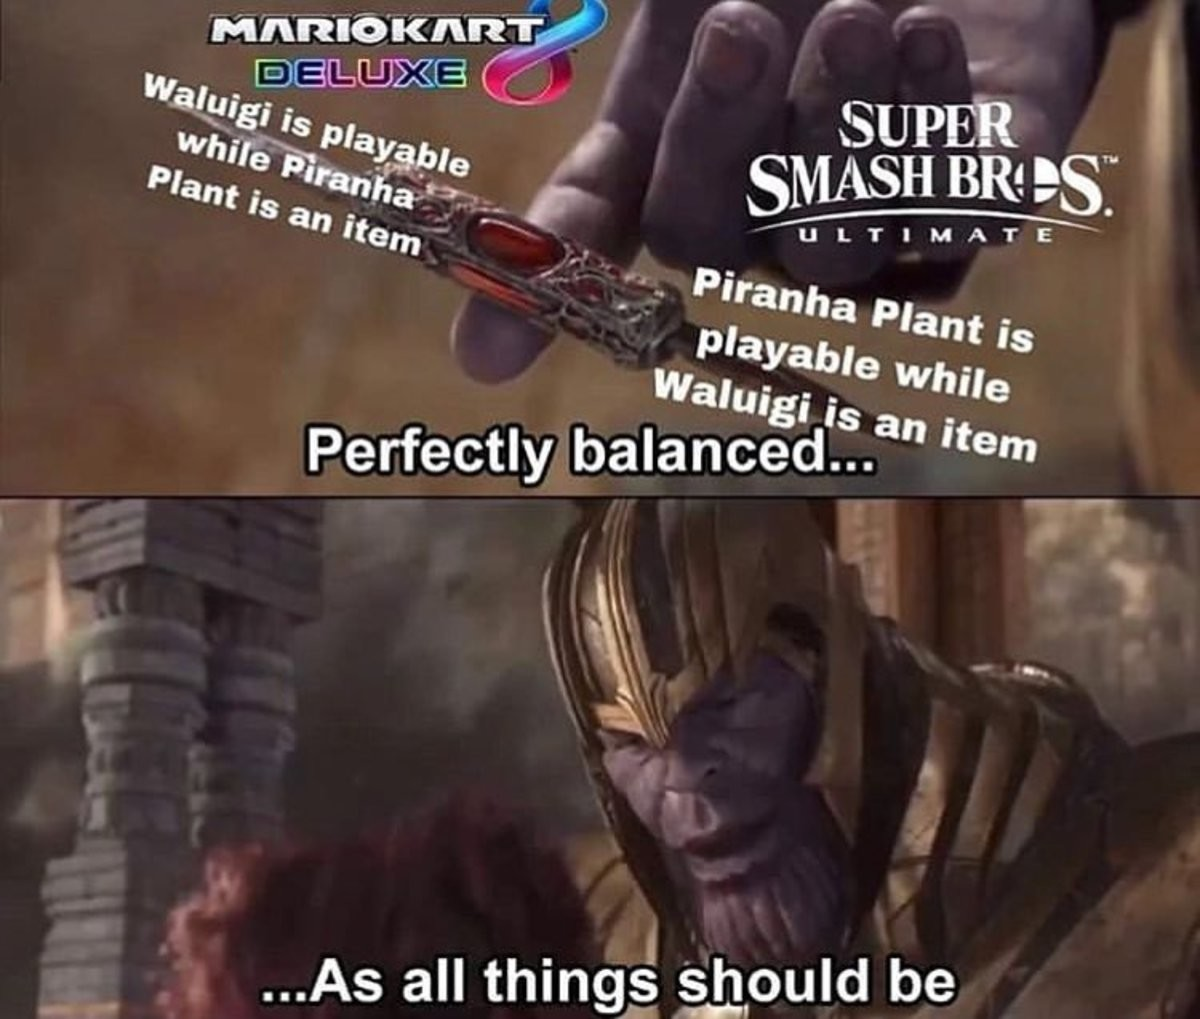 balance. .. Just played smash for the first time since the early days of brawl. Besides the stupid ass stages with titling and disappearing platforms and sudden stage drops